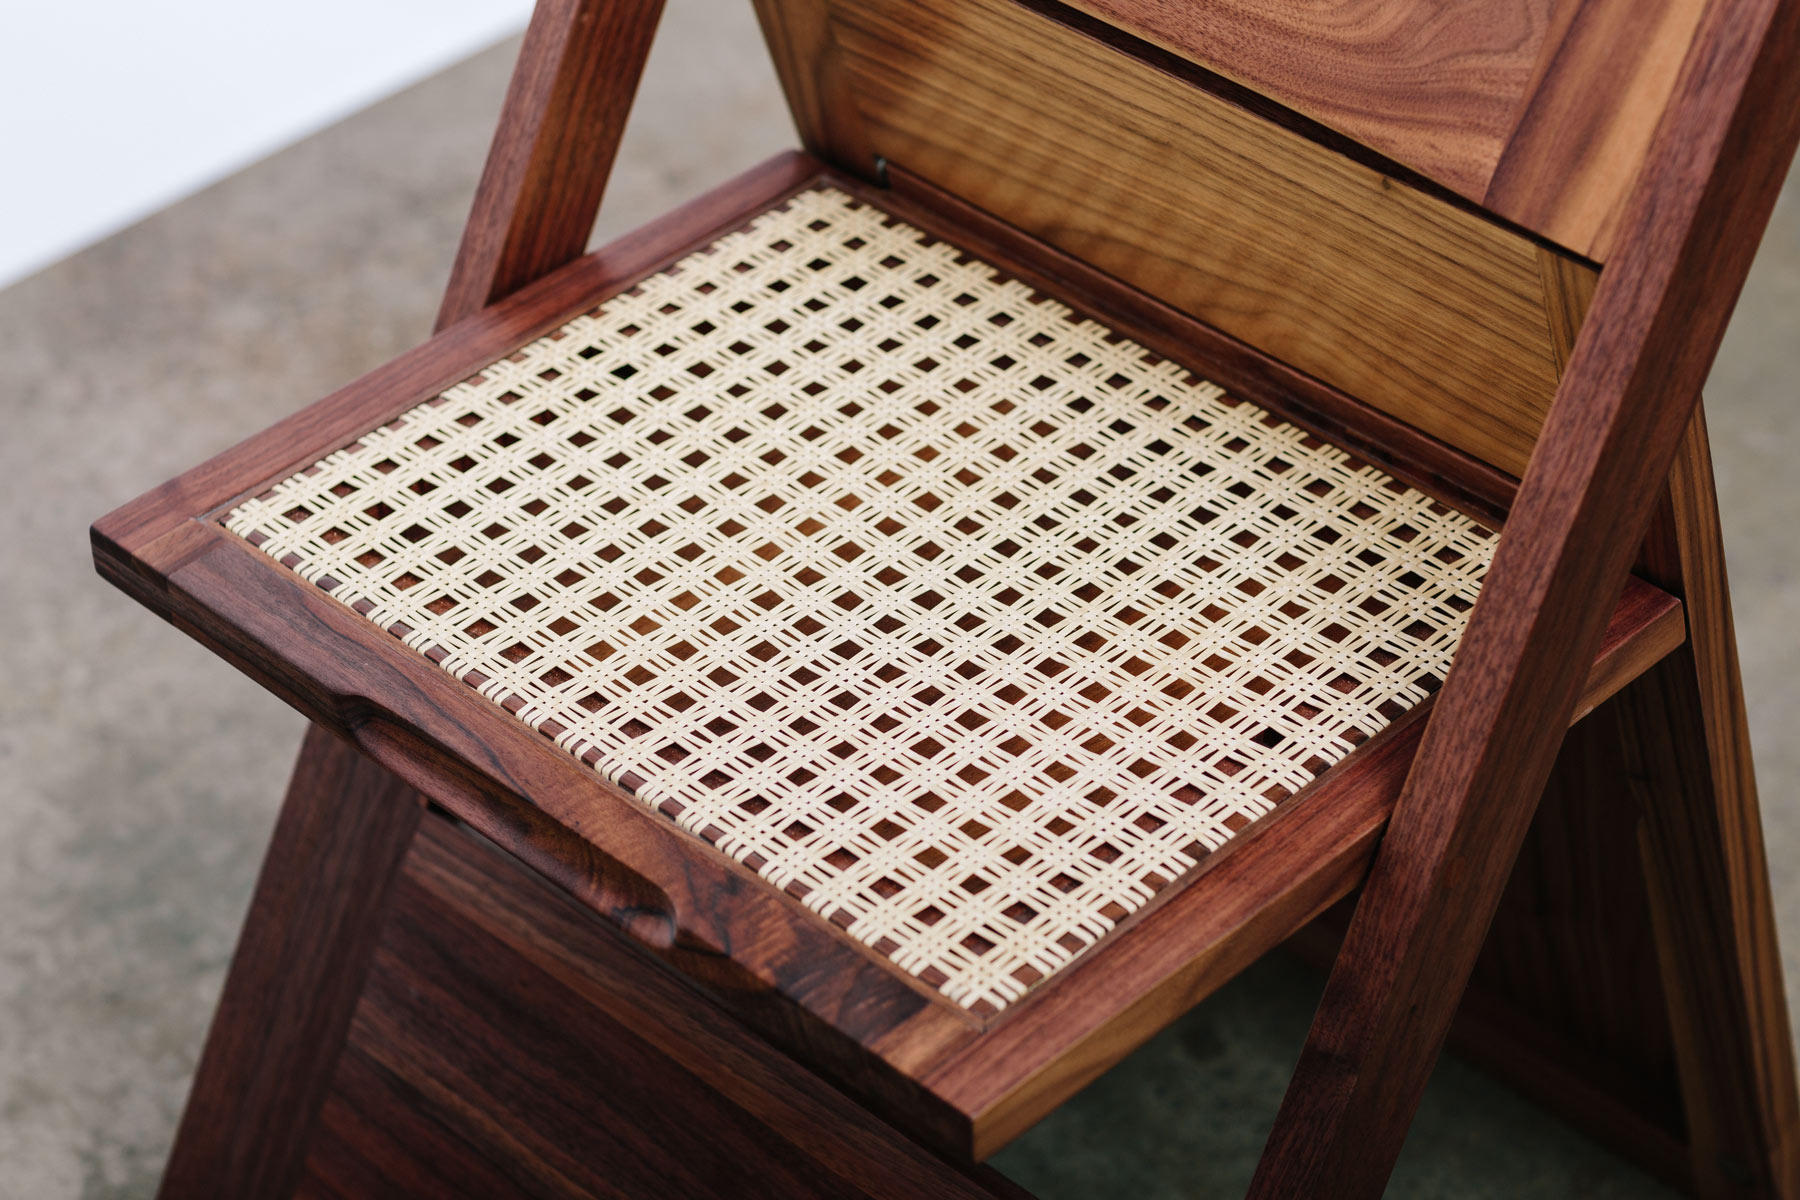 Furniture Design Golden Ratio the walnut golden ratio chair - chairs from bellwether furniture